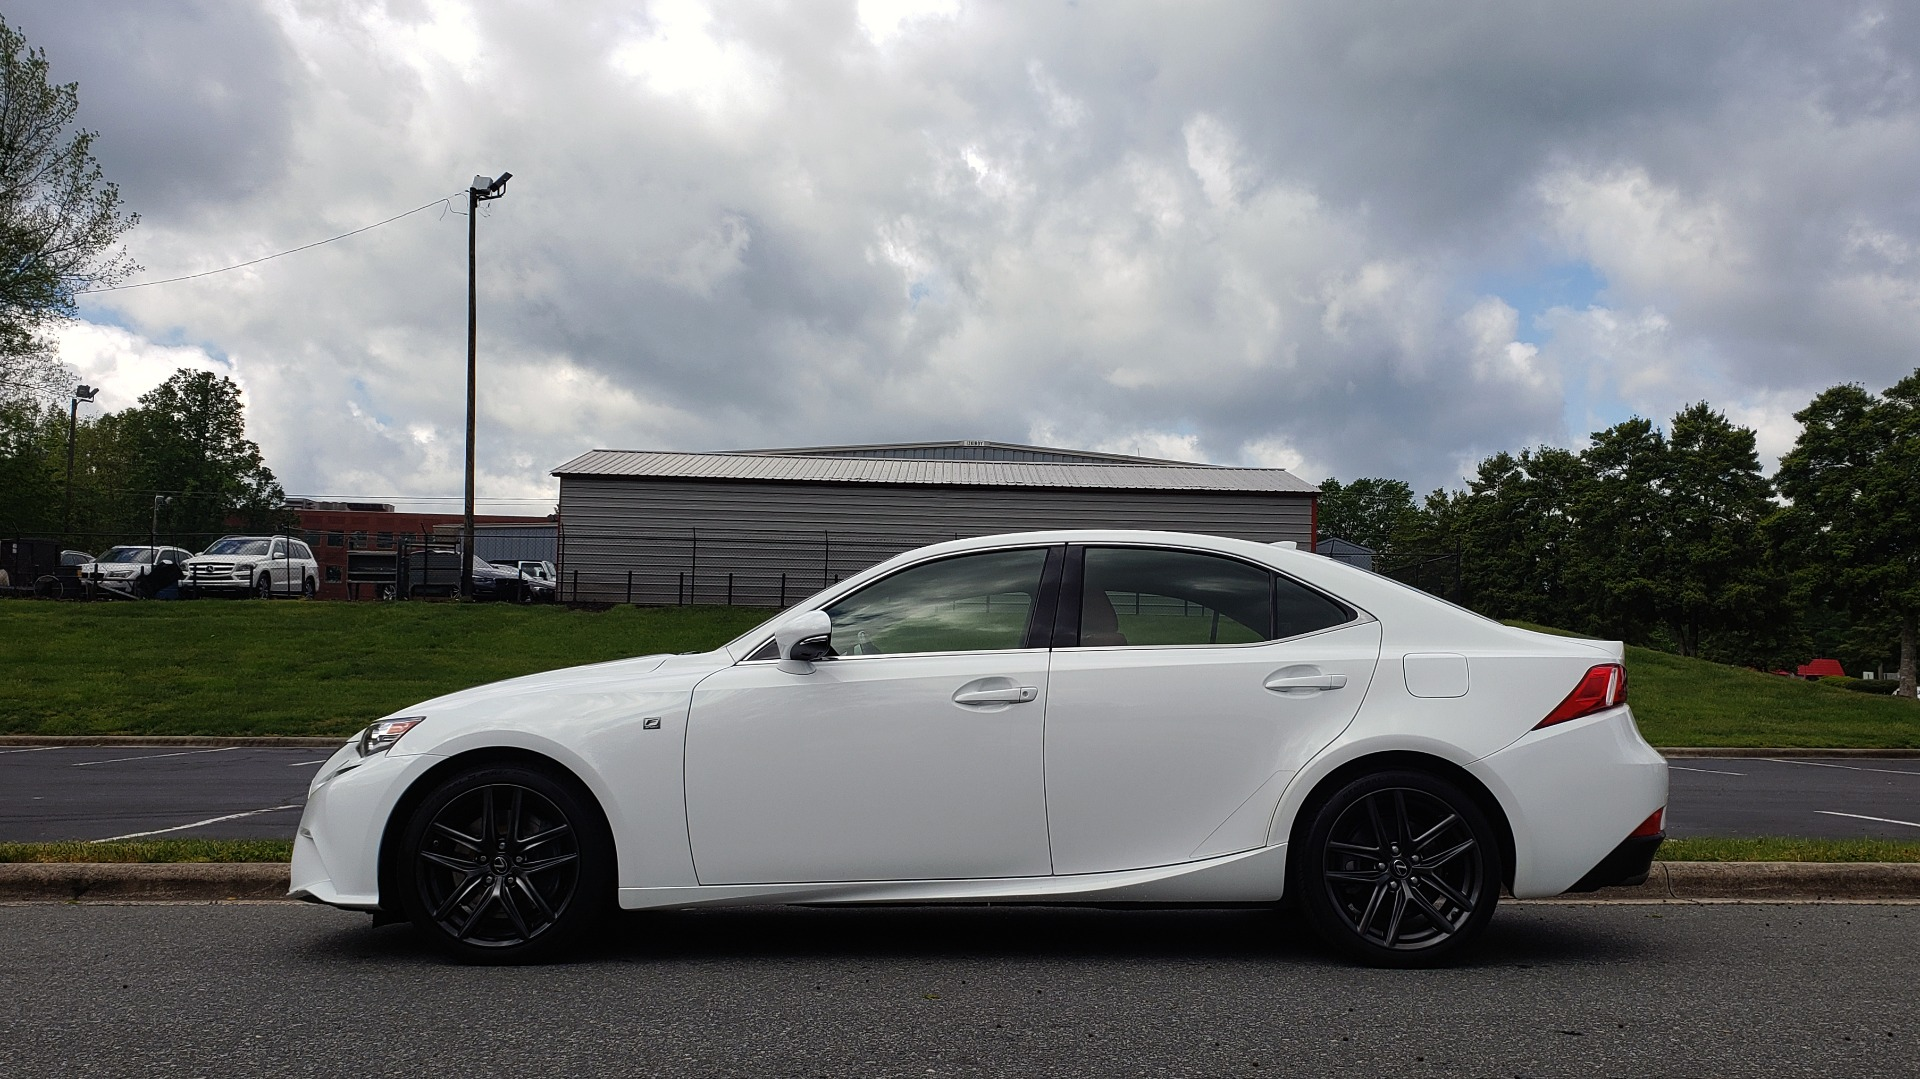 Used 2016 Lexus IS 350 F-SPORT / NAV / BSM / SUNROOF / REARVIEW / VENT SEATS for sale Sold at Formula Imports in Charlotte NC 28227 2